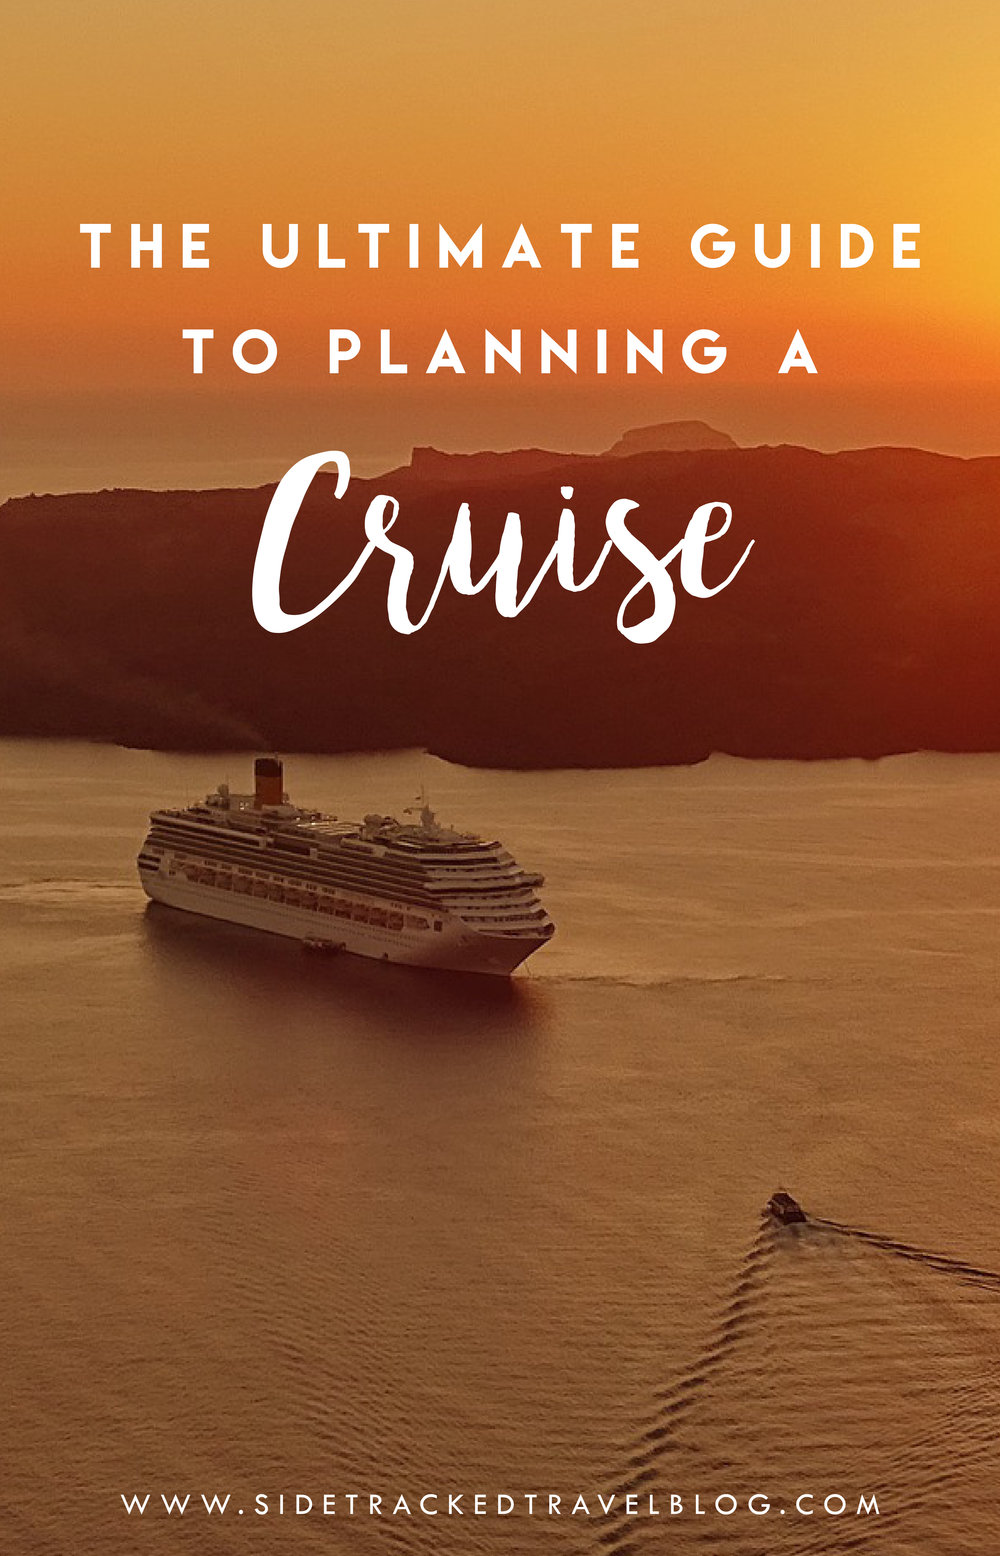 From picking a destination that interests you, finding the right cruise line, booking transfers, and everything in between, here is a list of things to assist you in booking your next cruise.